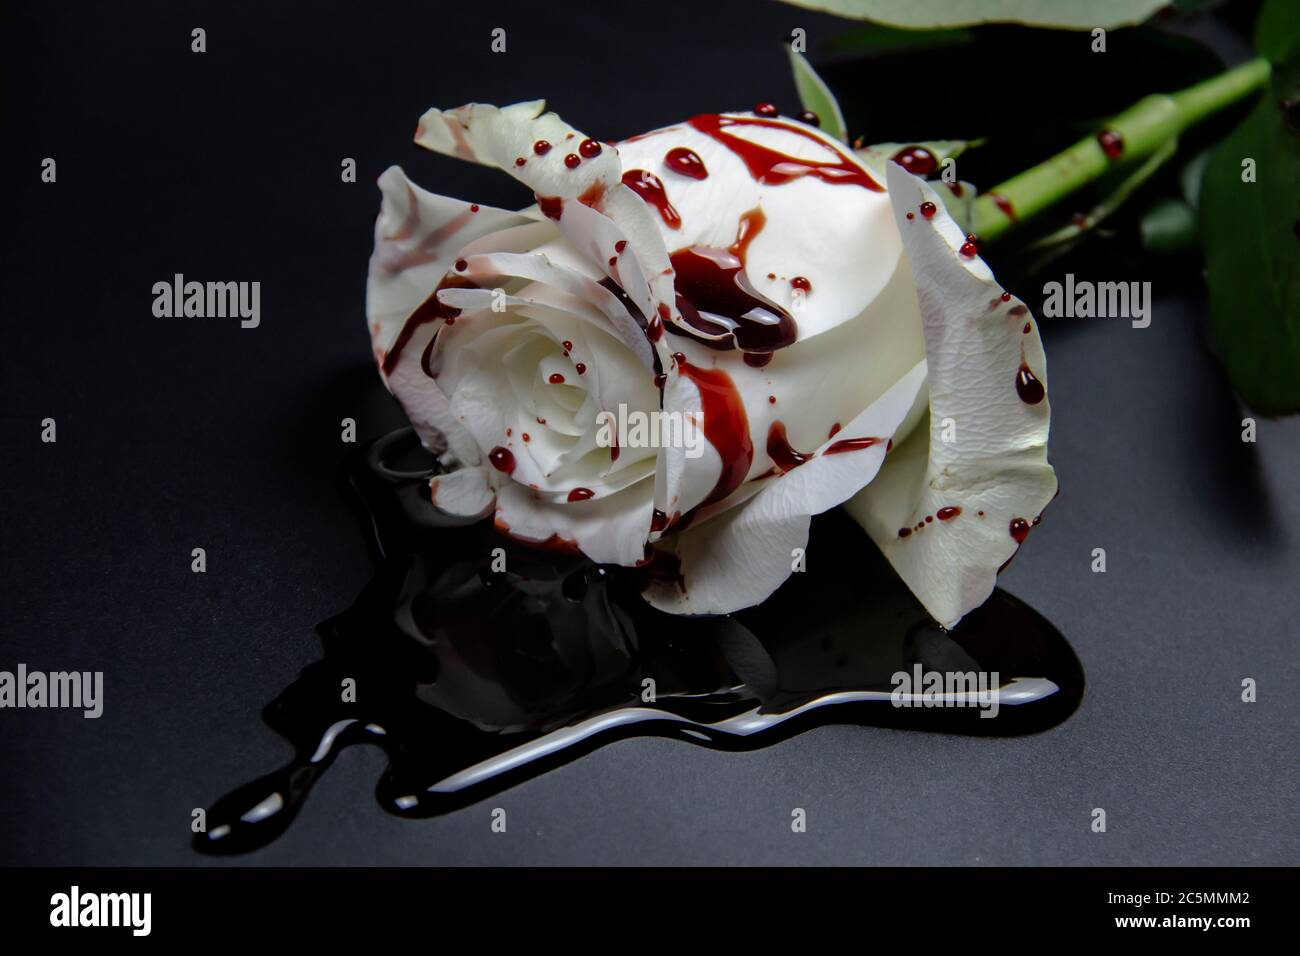 Beautiful And Bloody White Rose On The Dark Background Bloody Rose Conceptual Photo White Rose With Blood Stock Photo Alamy